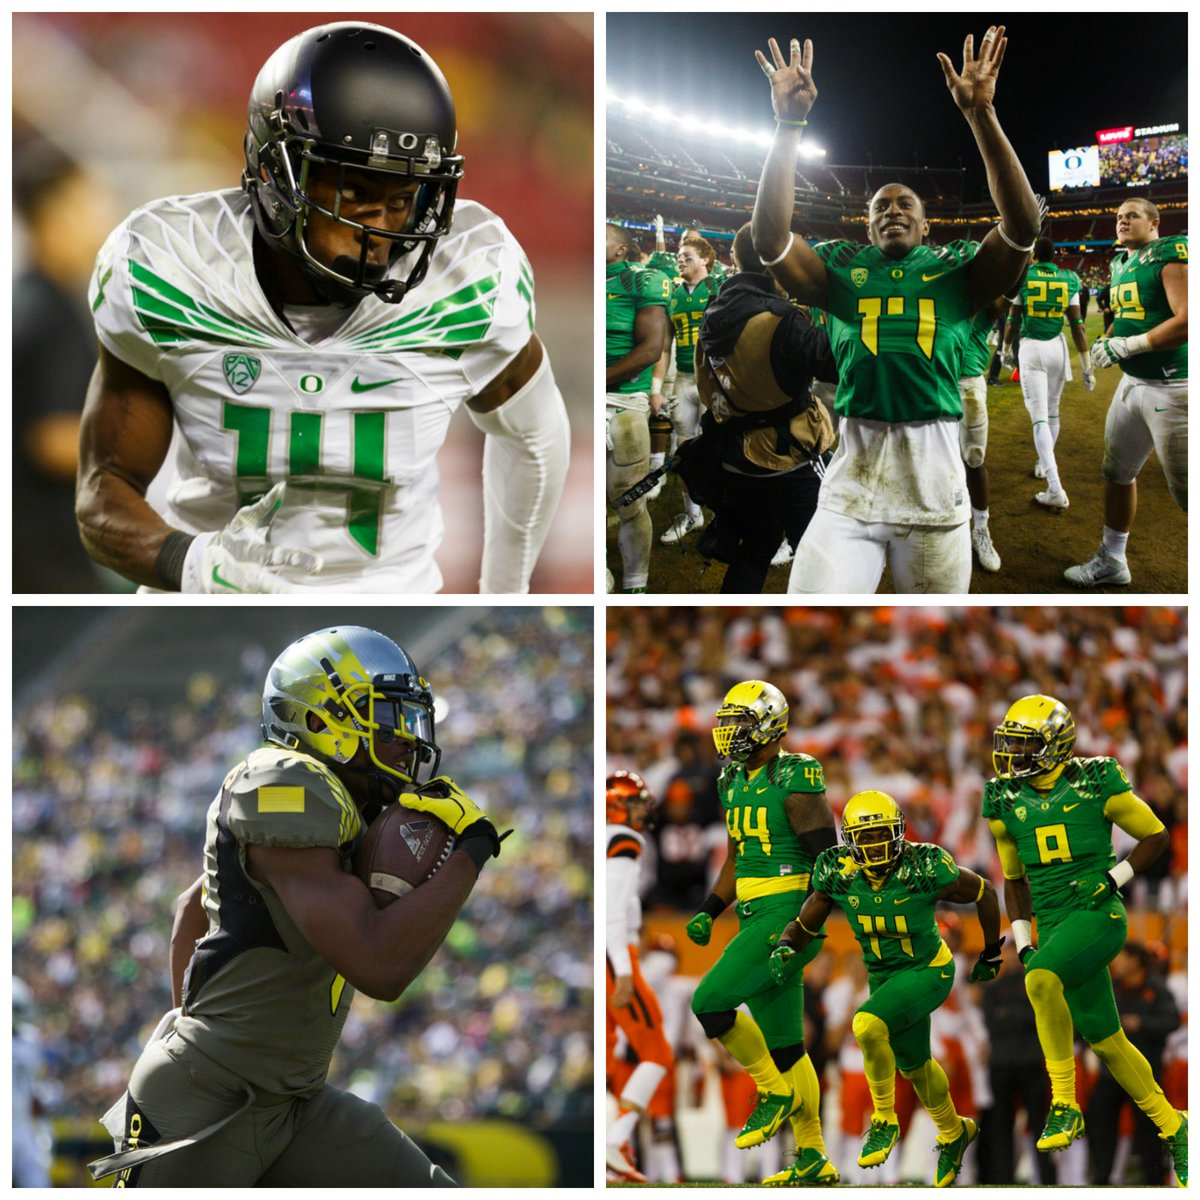 Thanks for a great season and career at Oregon, Ifo! #GoDucks http://t.co/1fhhA9jRIx